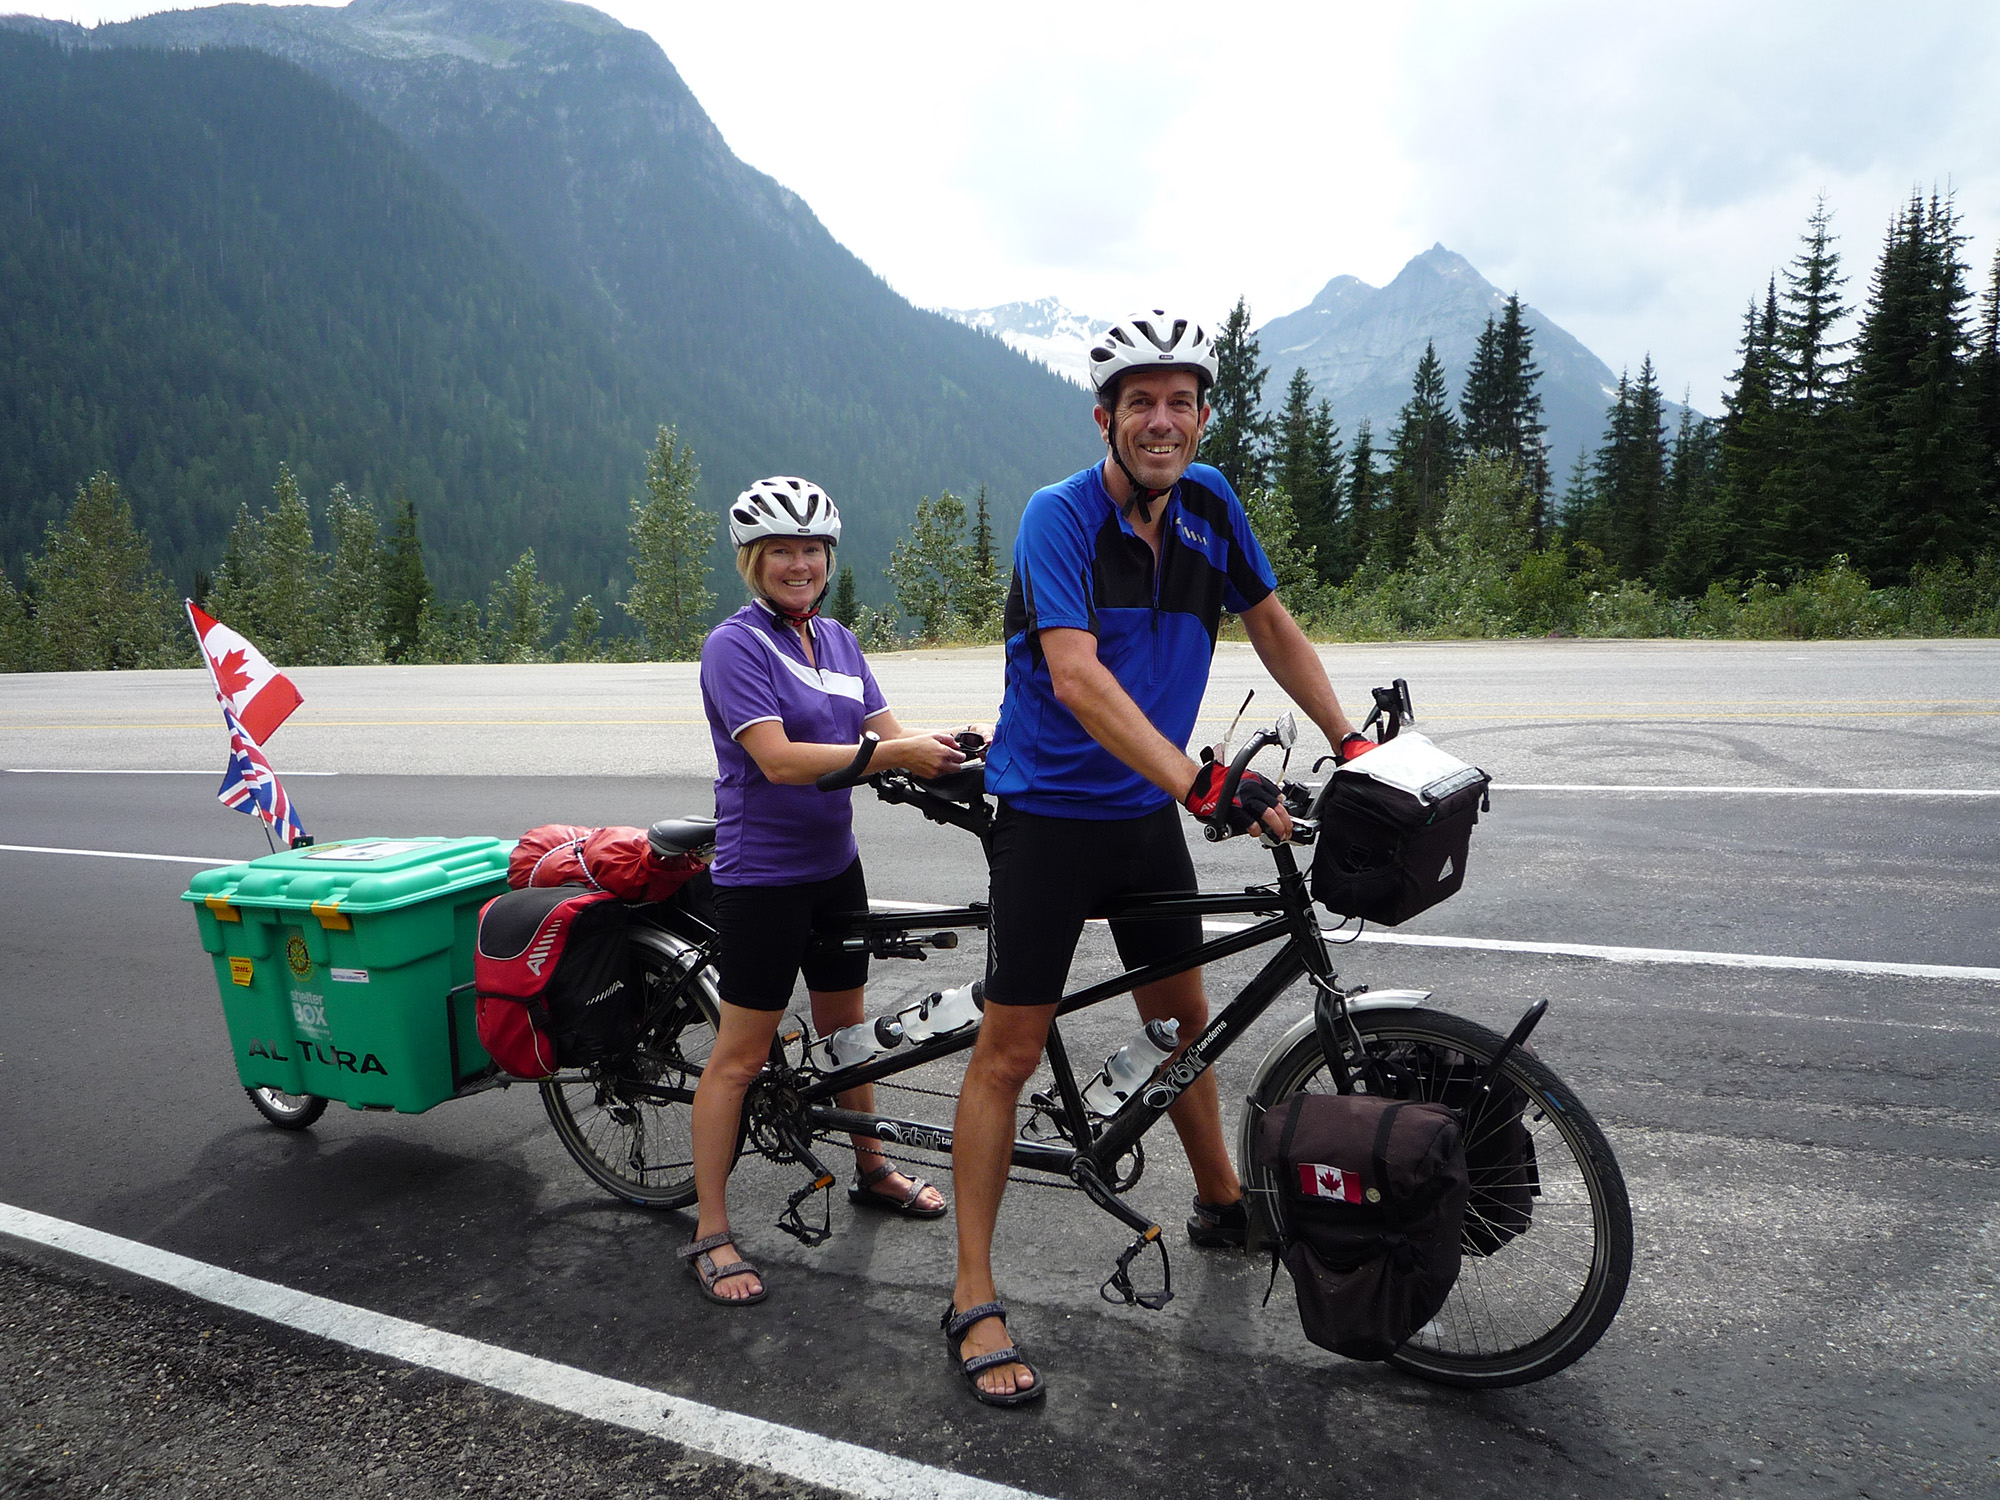 ShelterBox - Do Your Own Thing - Biking tandem